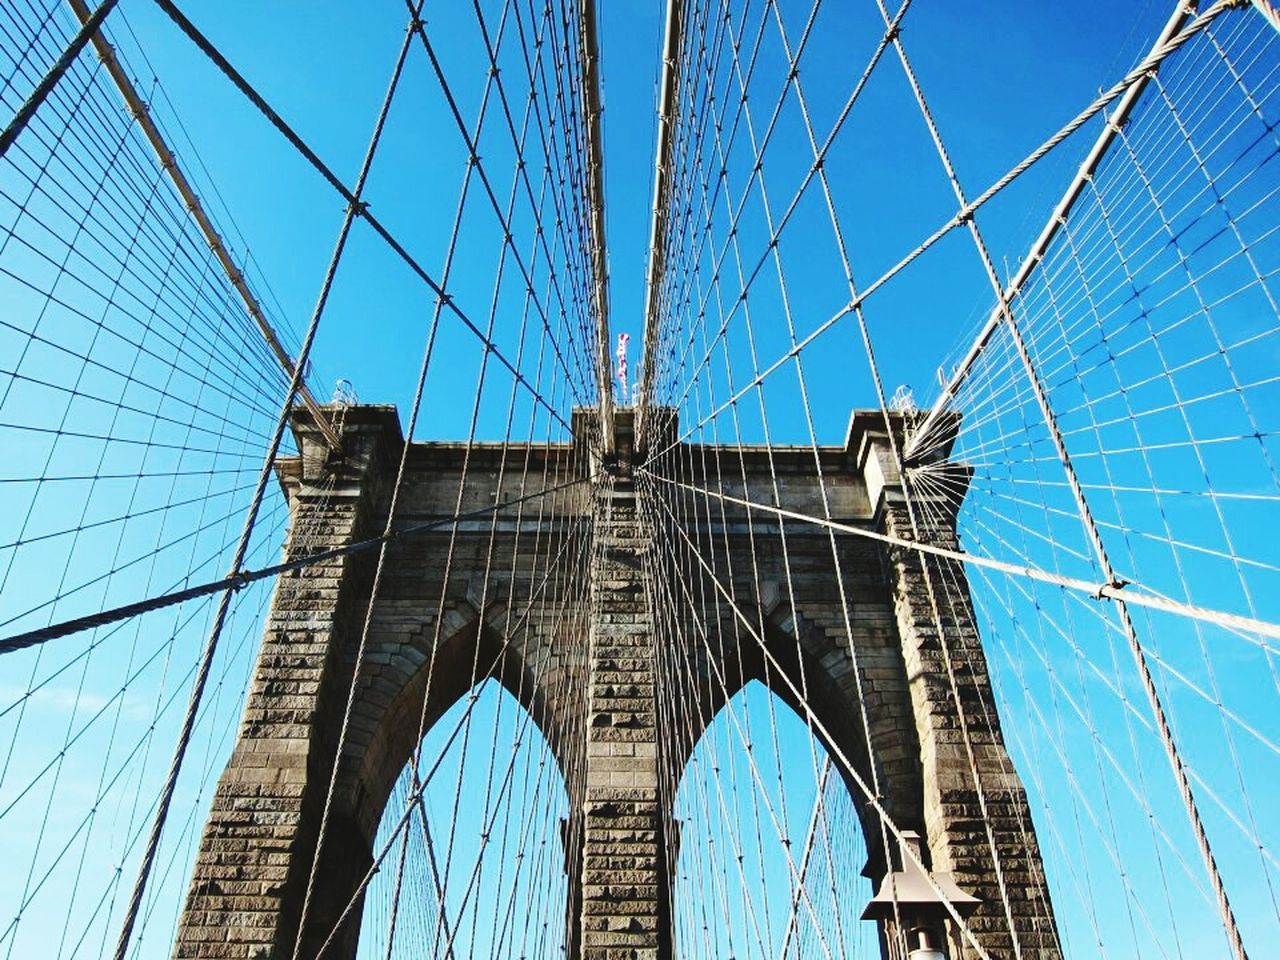 bridge - man made structure, architecture, built structure, connection, engineering, suspension bridge, low angle view, blue, transportation, sky, city, skyscraper, modern, travel destinations, outdoors, day, travel, building exterior, cable, no people, clear sky, urban skyline